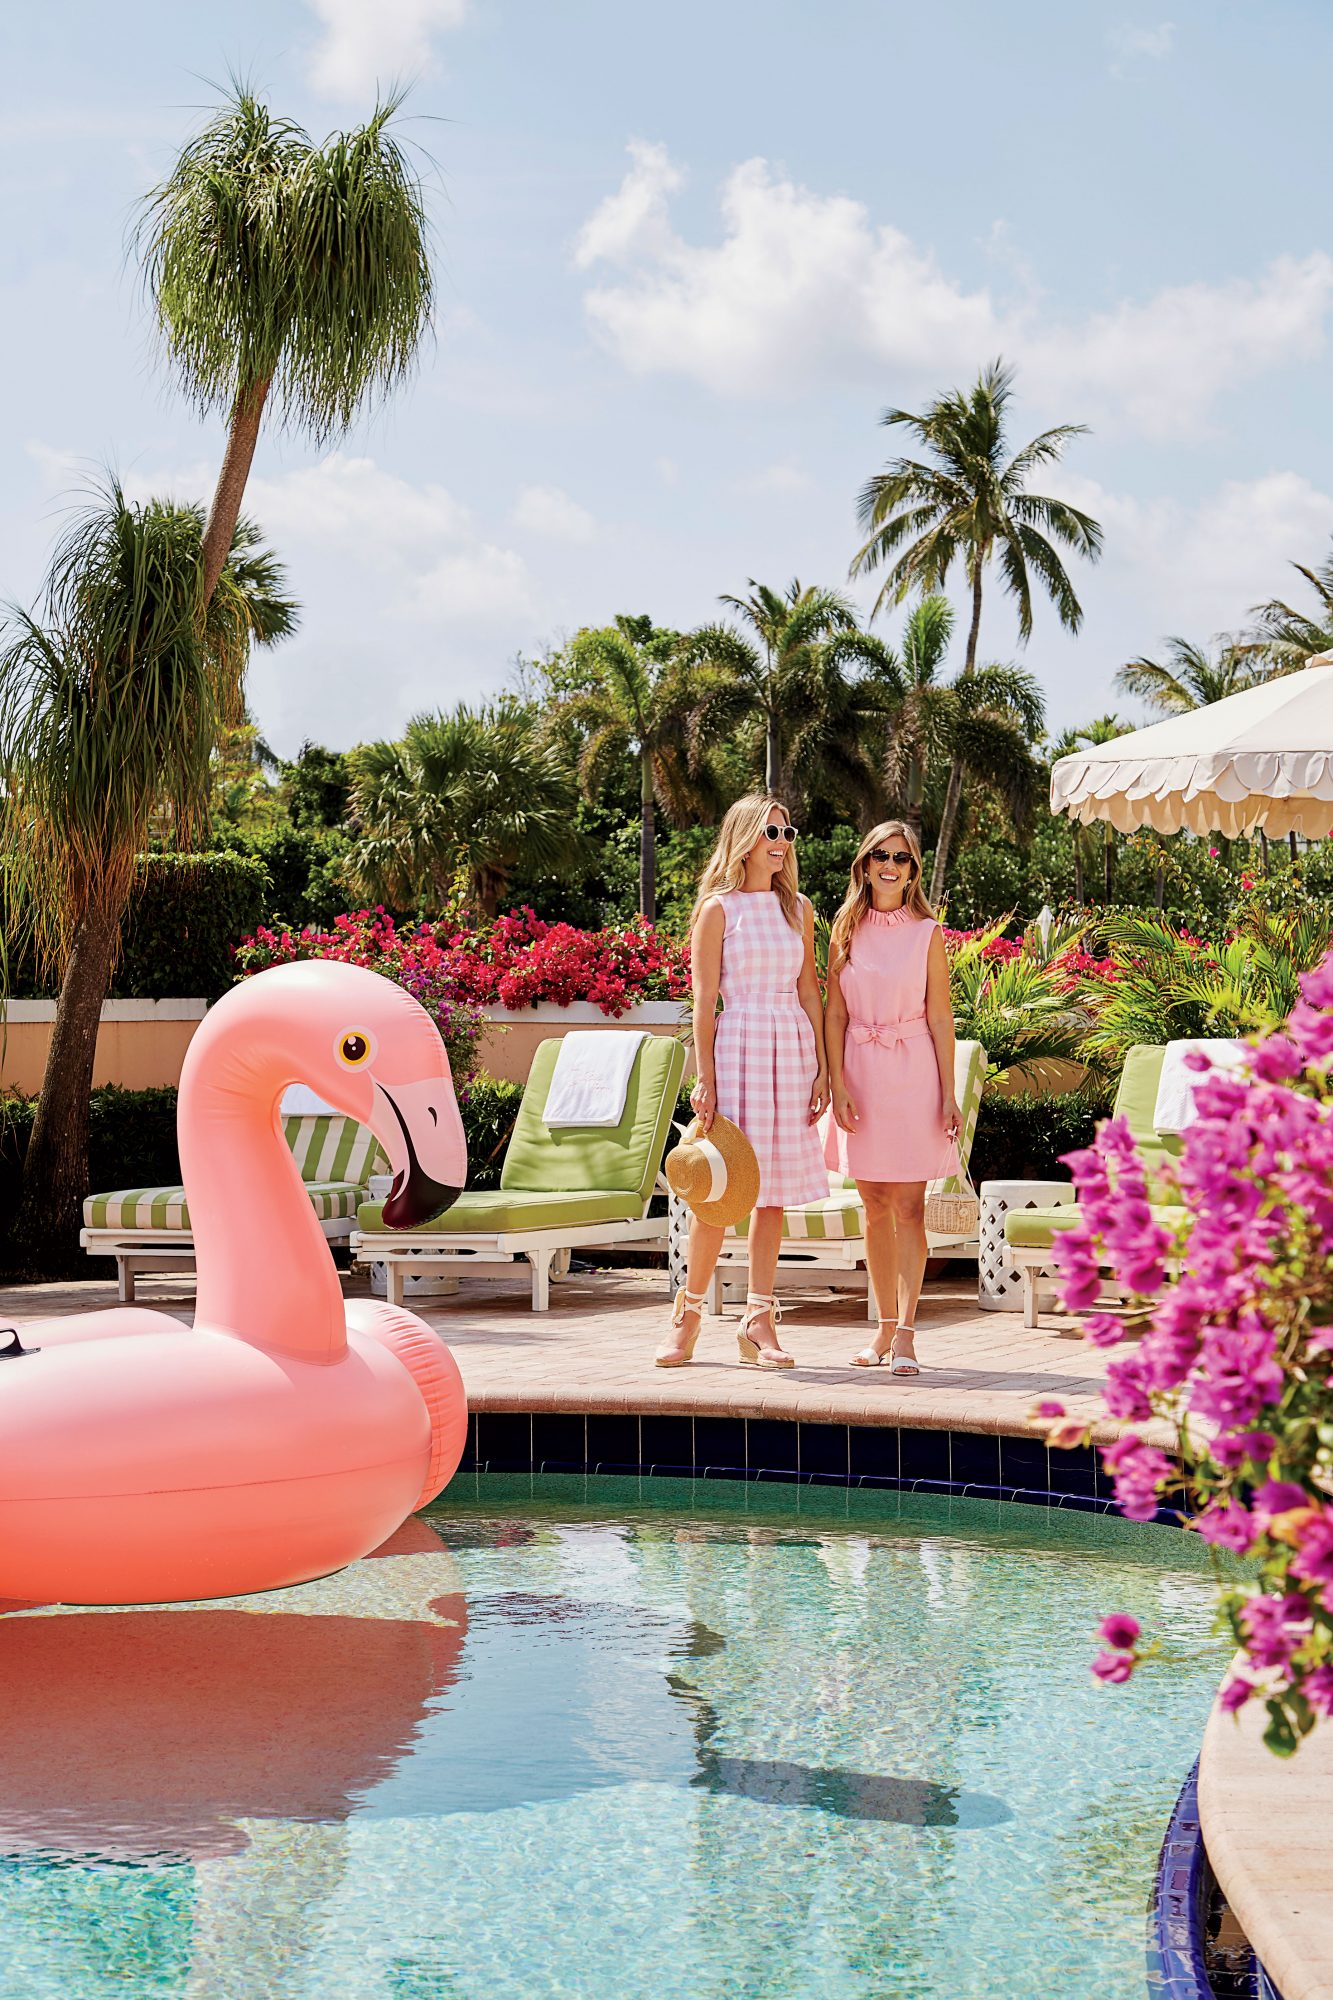 Danielle Norcross and Beth Aschenbach in Pink of Palm Beach Lately